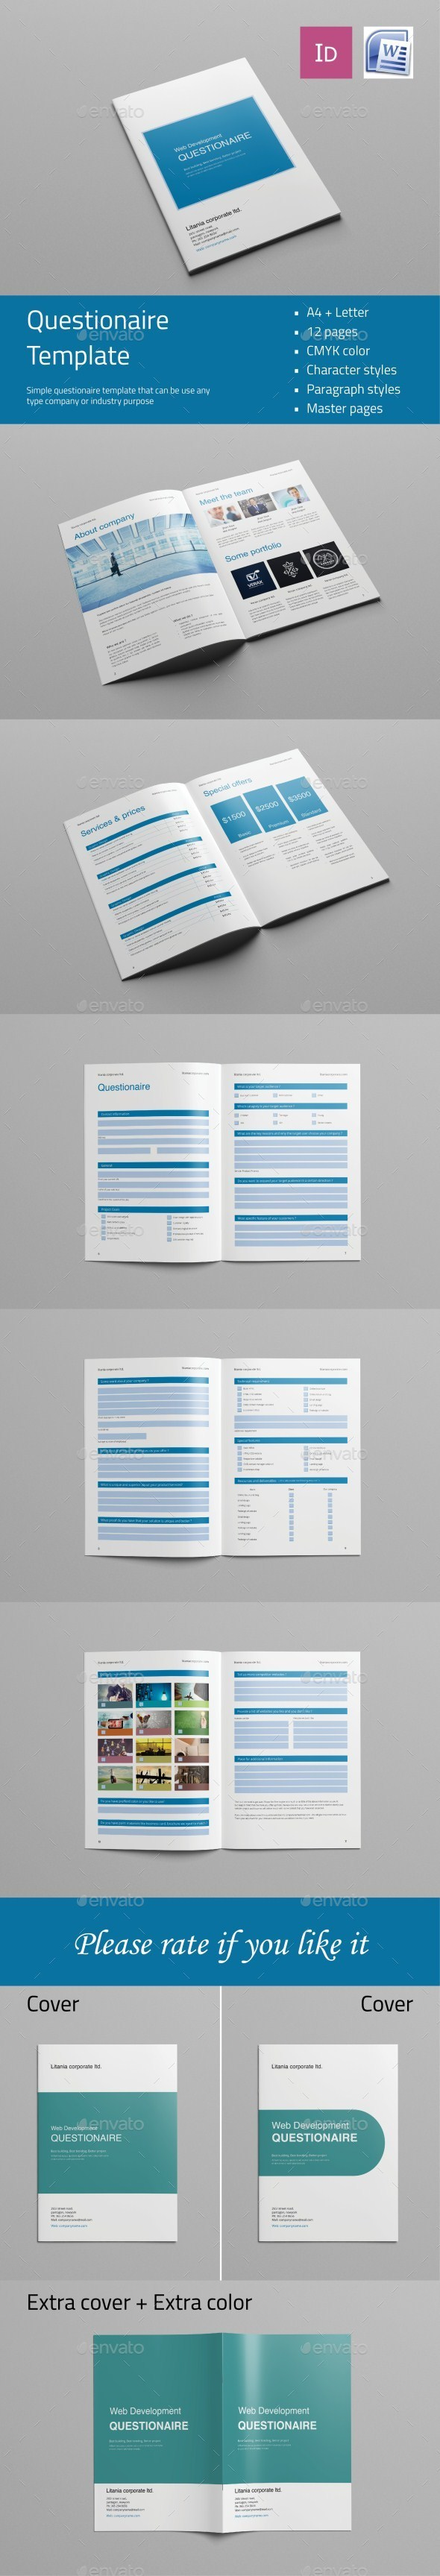 Web Design Questionnaire Template Indesign Indd Design Download